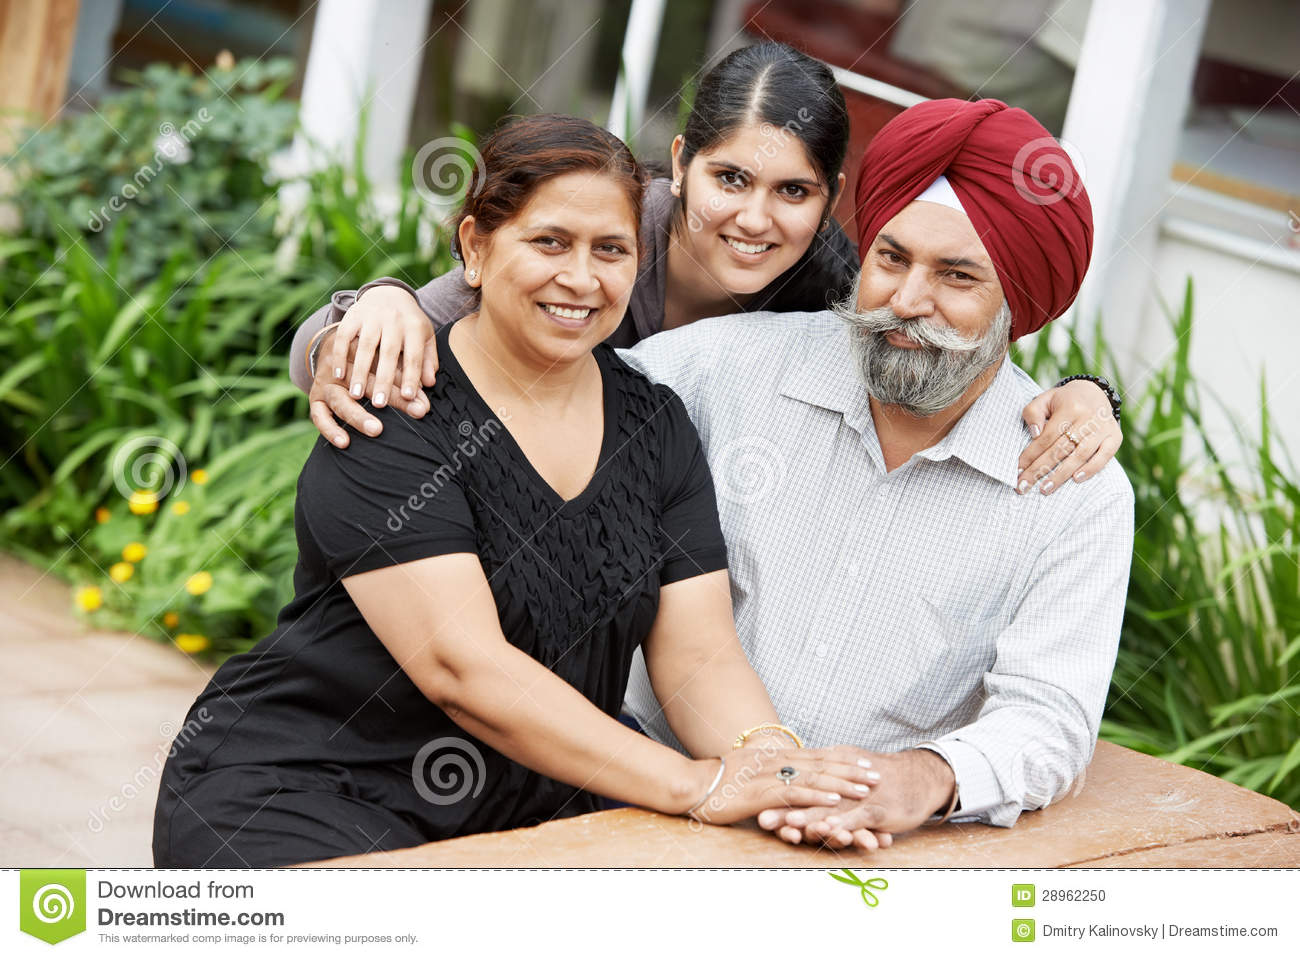 7 Family Stock Photo Adult Images